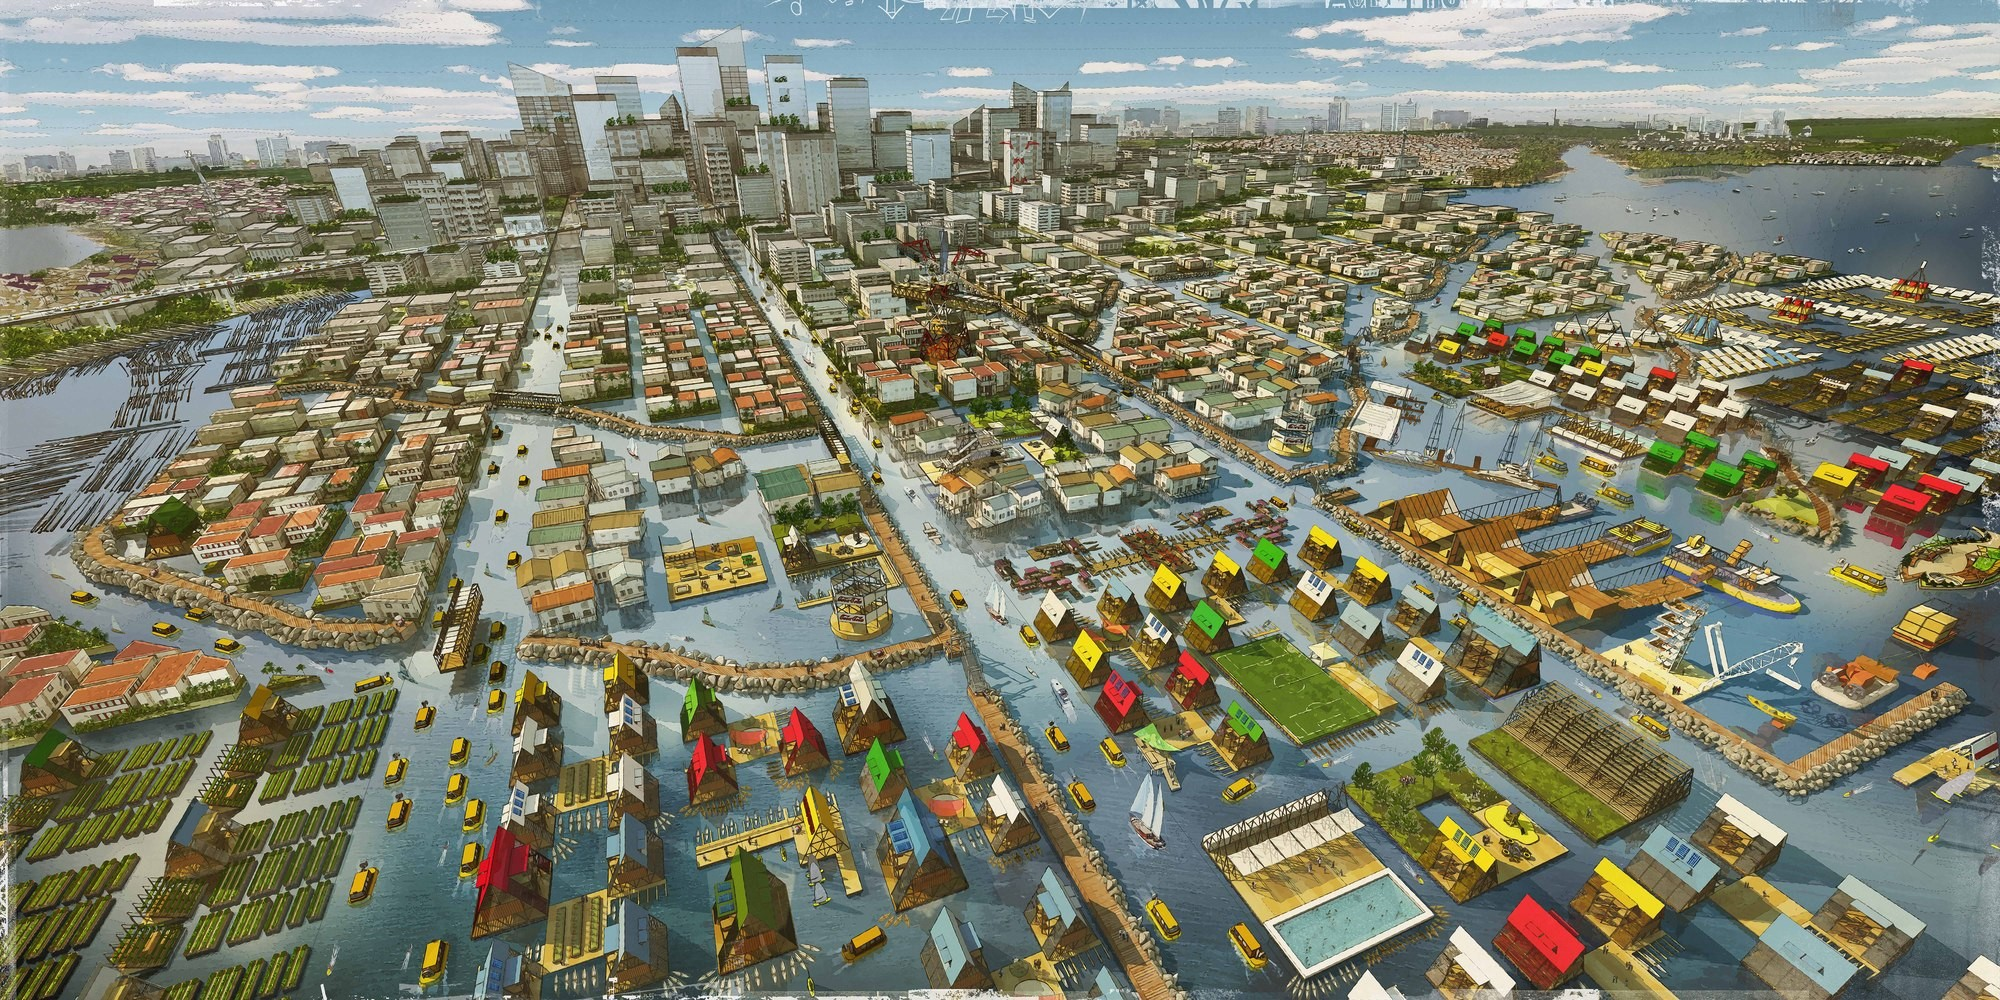 "An urban growth proposal developed for Lagos as part of MoMA's ""Uneven Growth"" exhibition, developed by NLÉ in collaboration with Zoohaus/Inteligencias Colectivas. Image © NLÉ and Zoohaus/Inteligencias Colectivas"